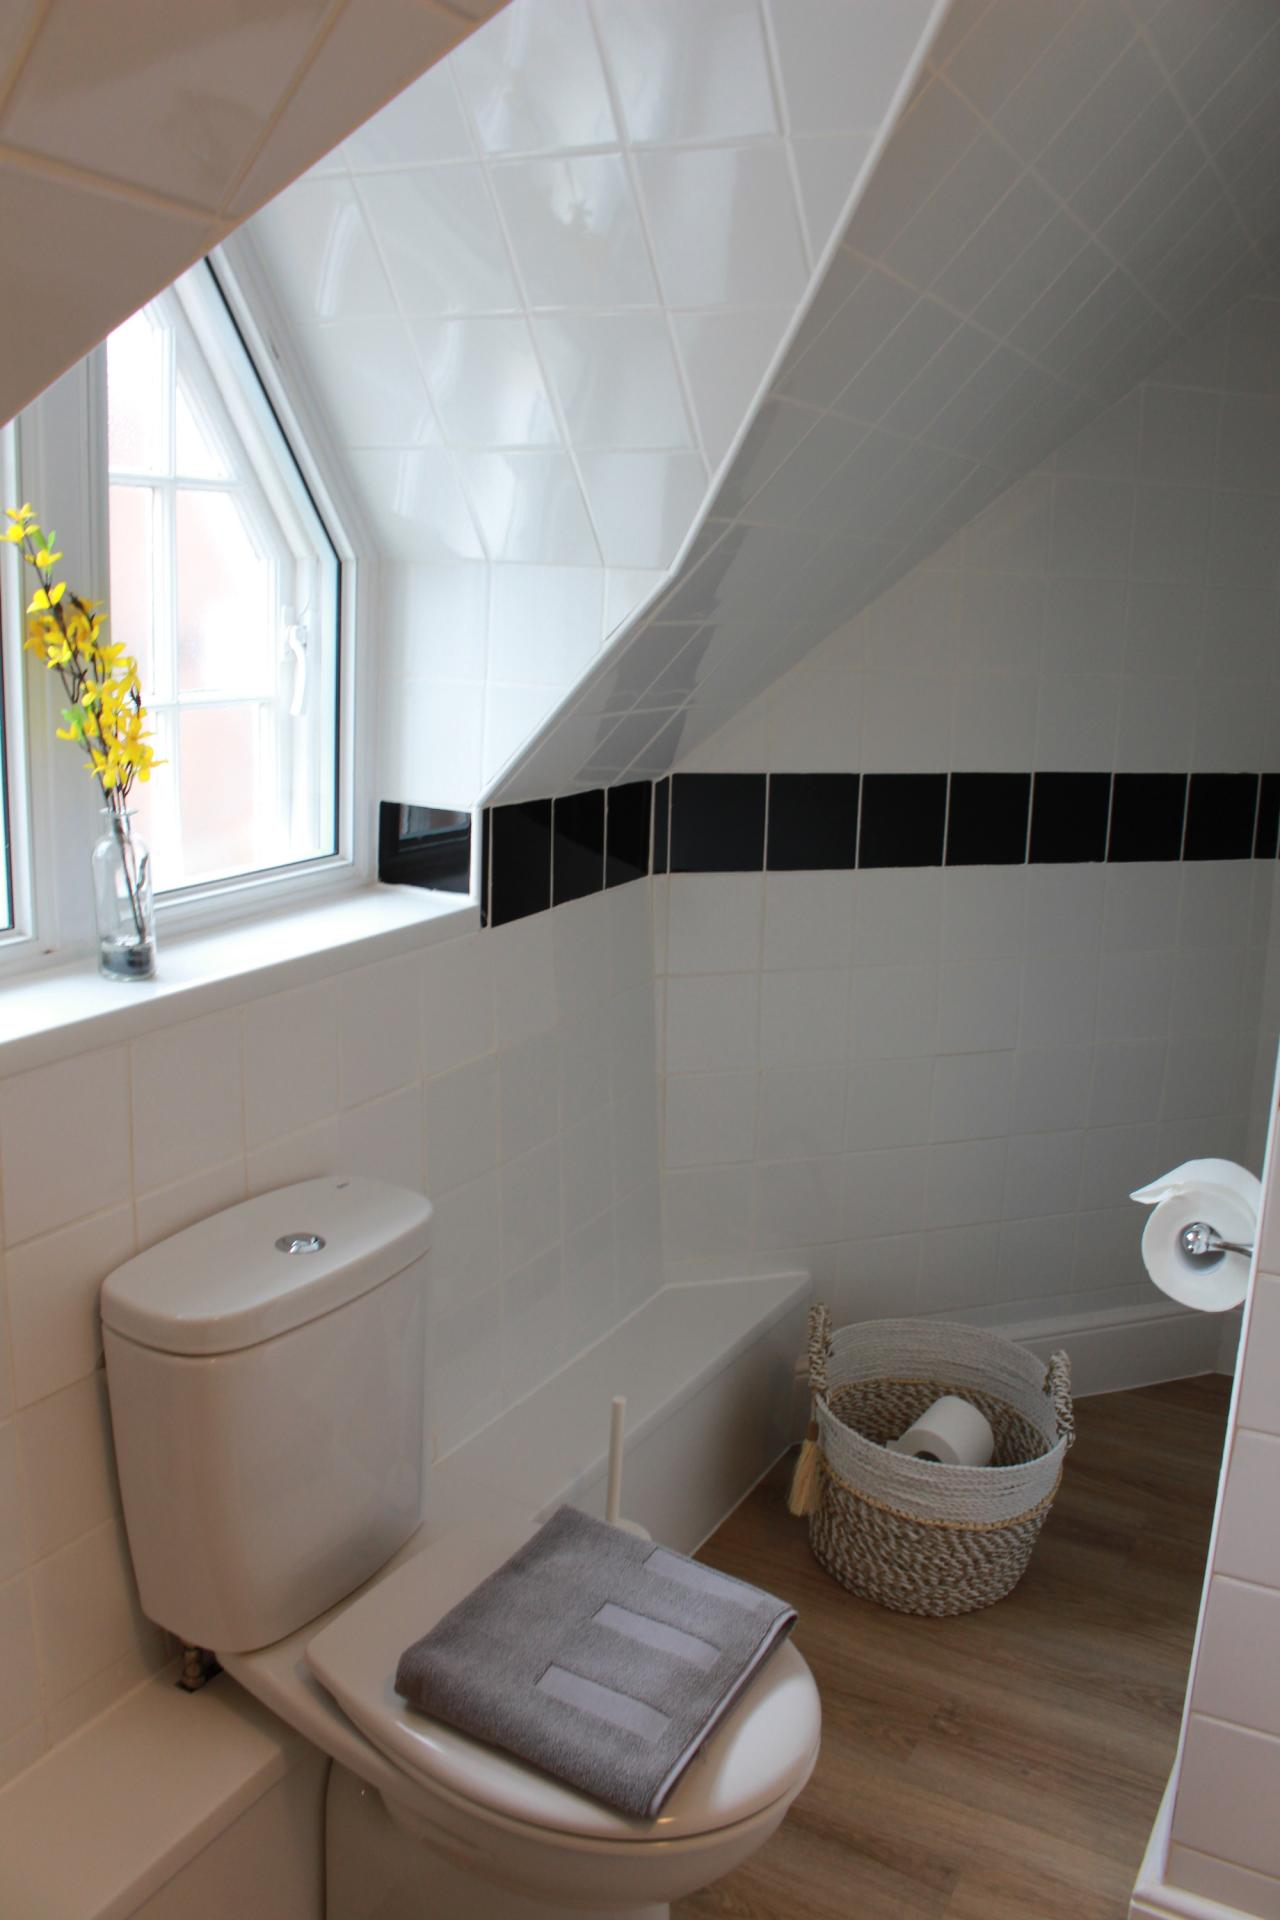 Toilet at Chilton Serviced Apartments